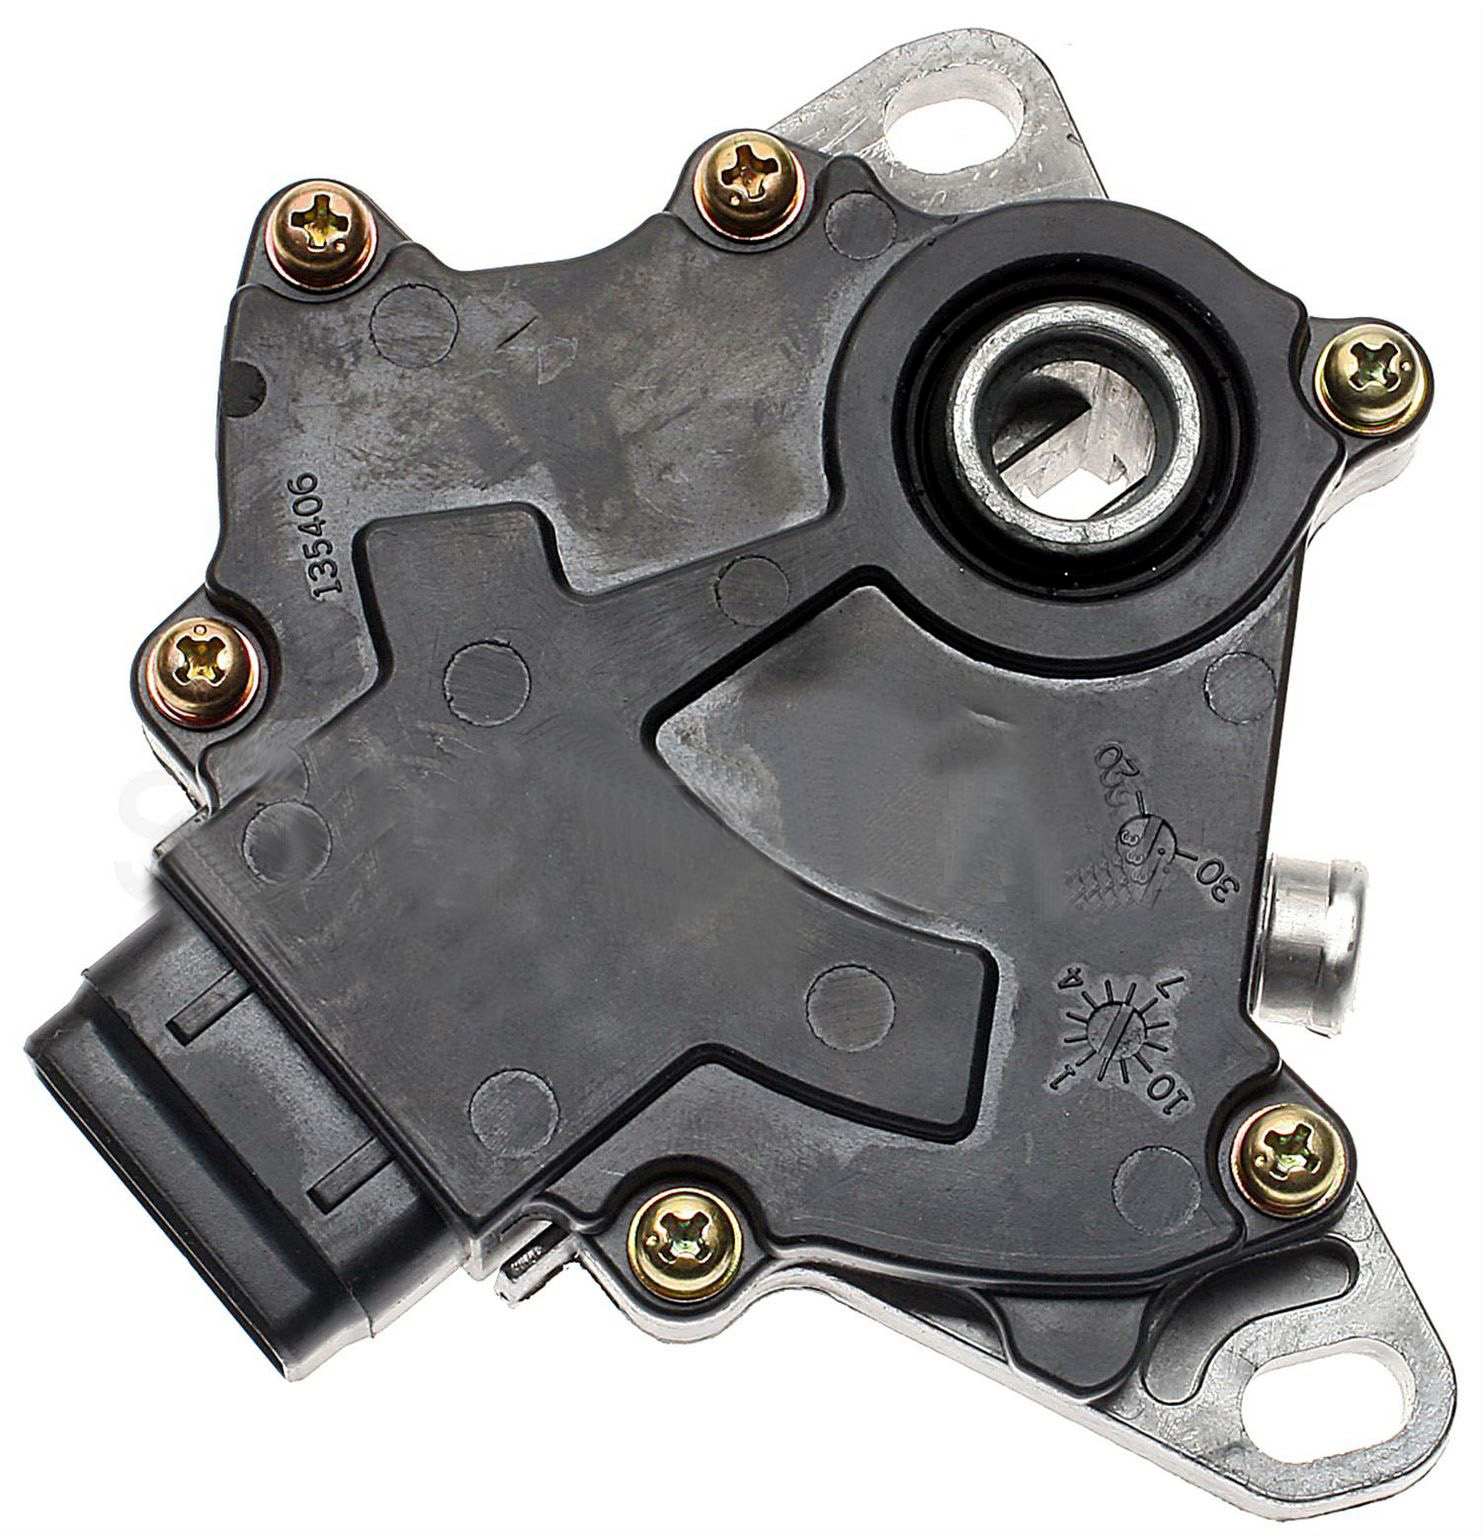 1994 Toyota Corolla Neutral Safety Switch